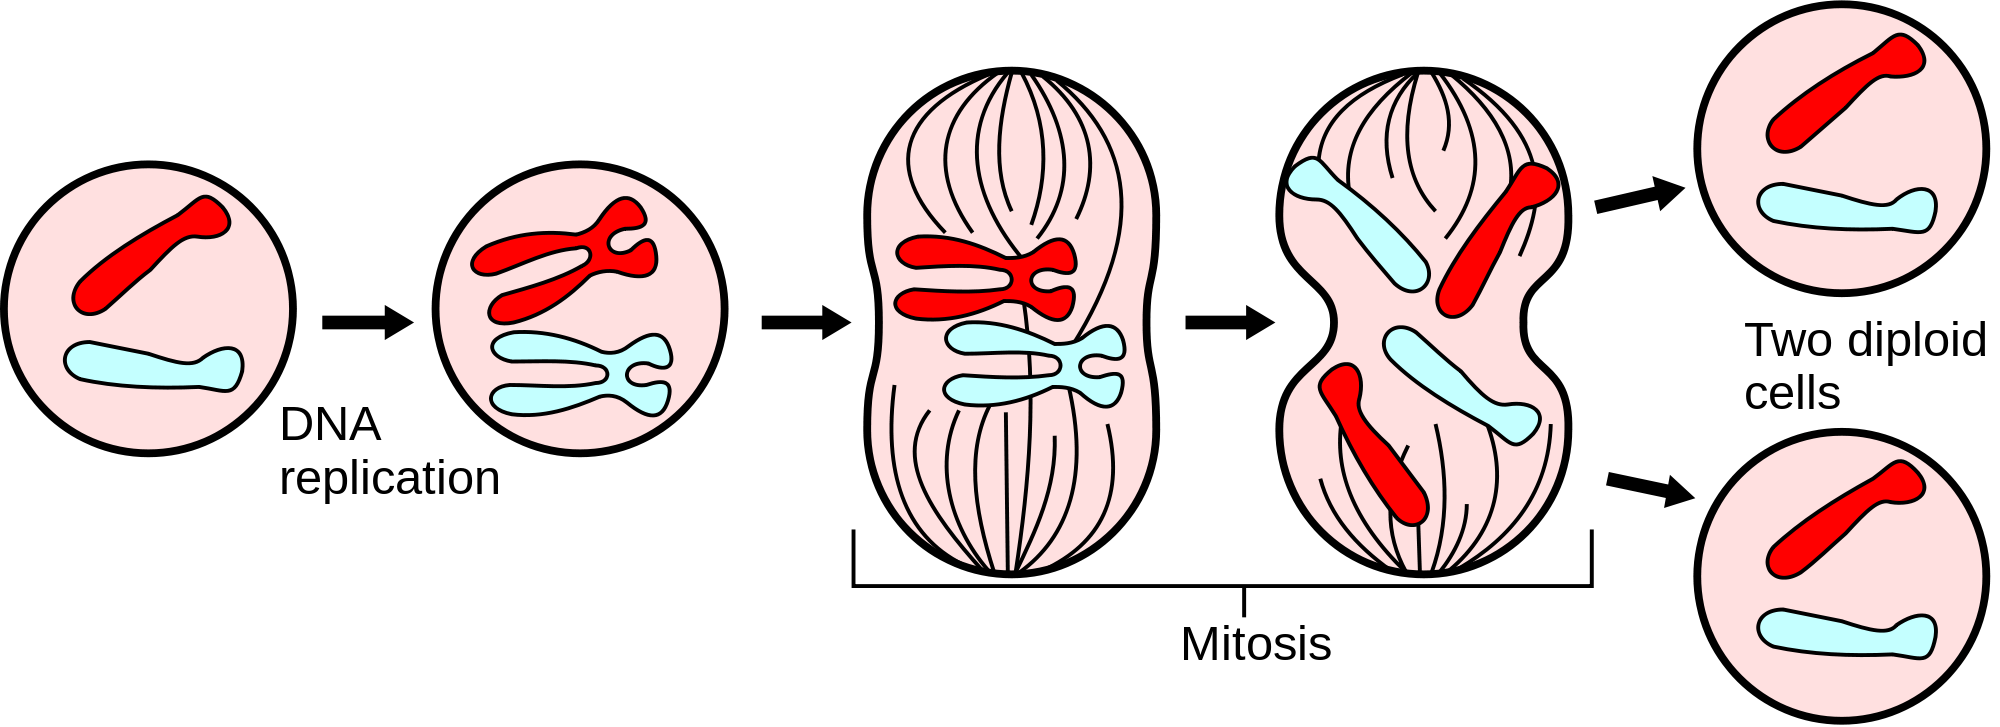 Svg events mitosis. Adv science